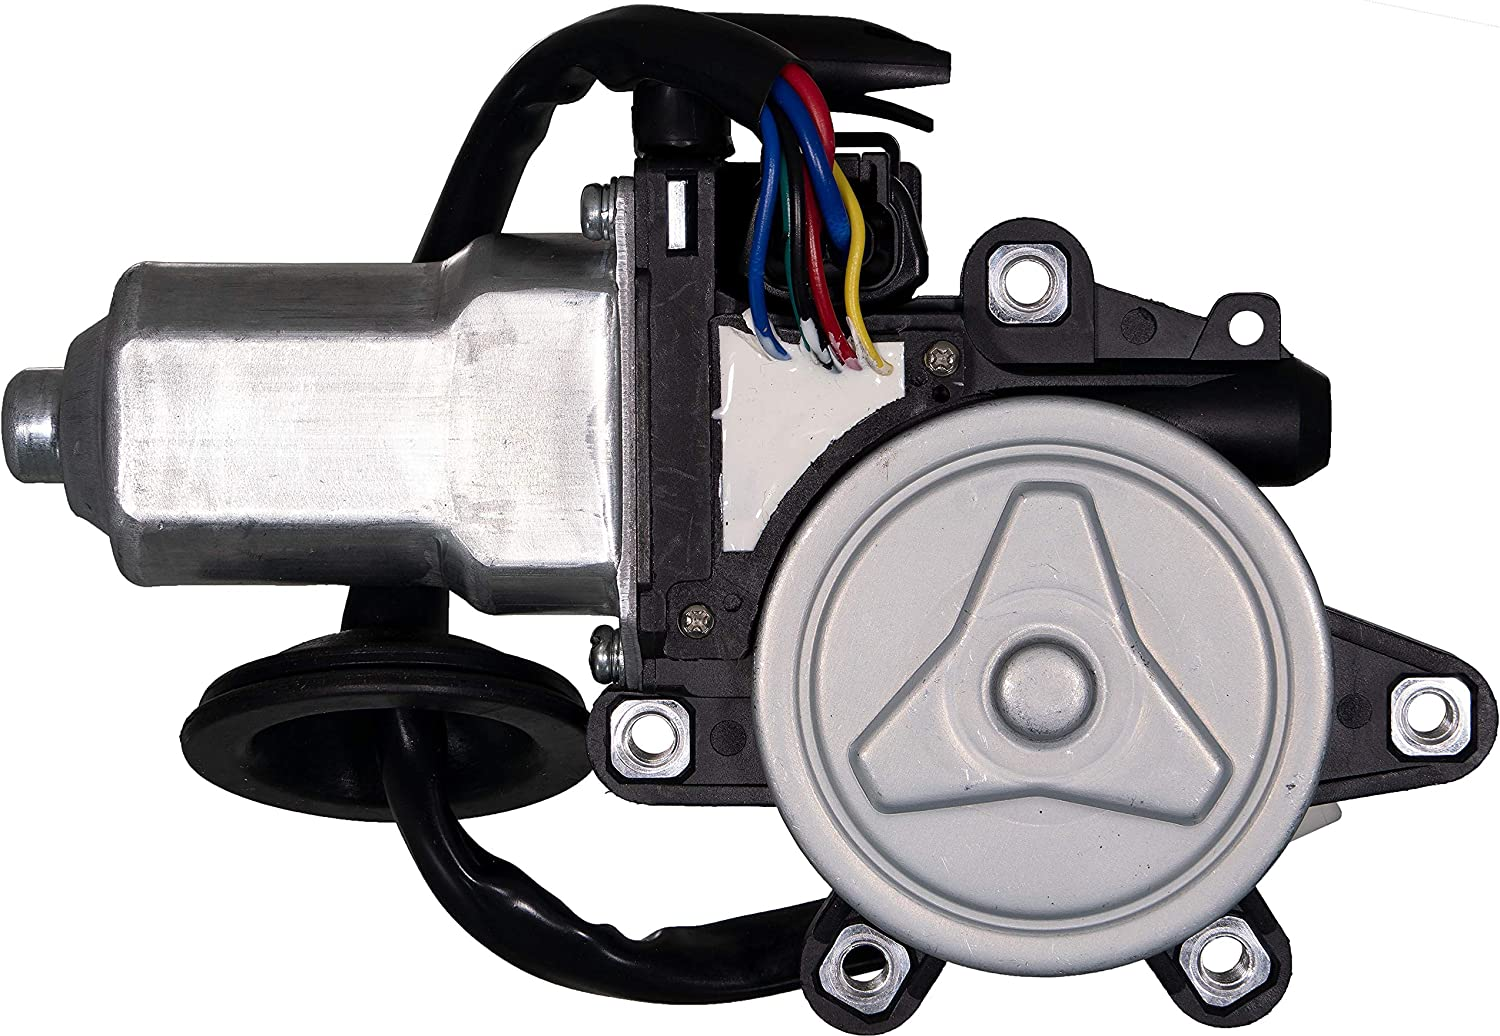 APDTY 853622 Window Lift Motor Front Left Replaces 80731-CD00A Fits 2003-2009 Nissan 350Z // 2003-2007 Infiniti G35 Coupe Driver-Side